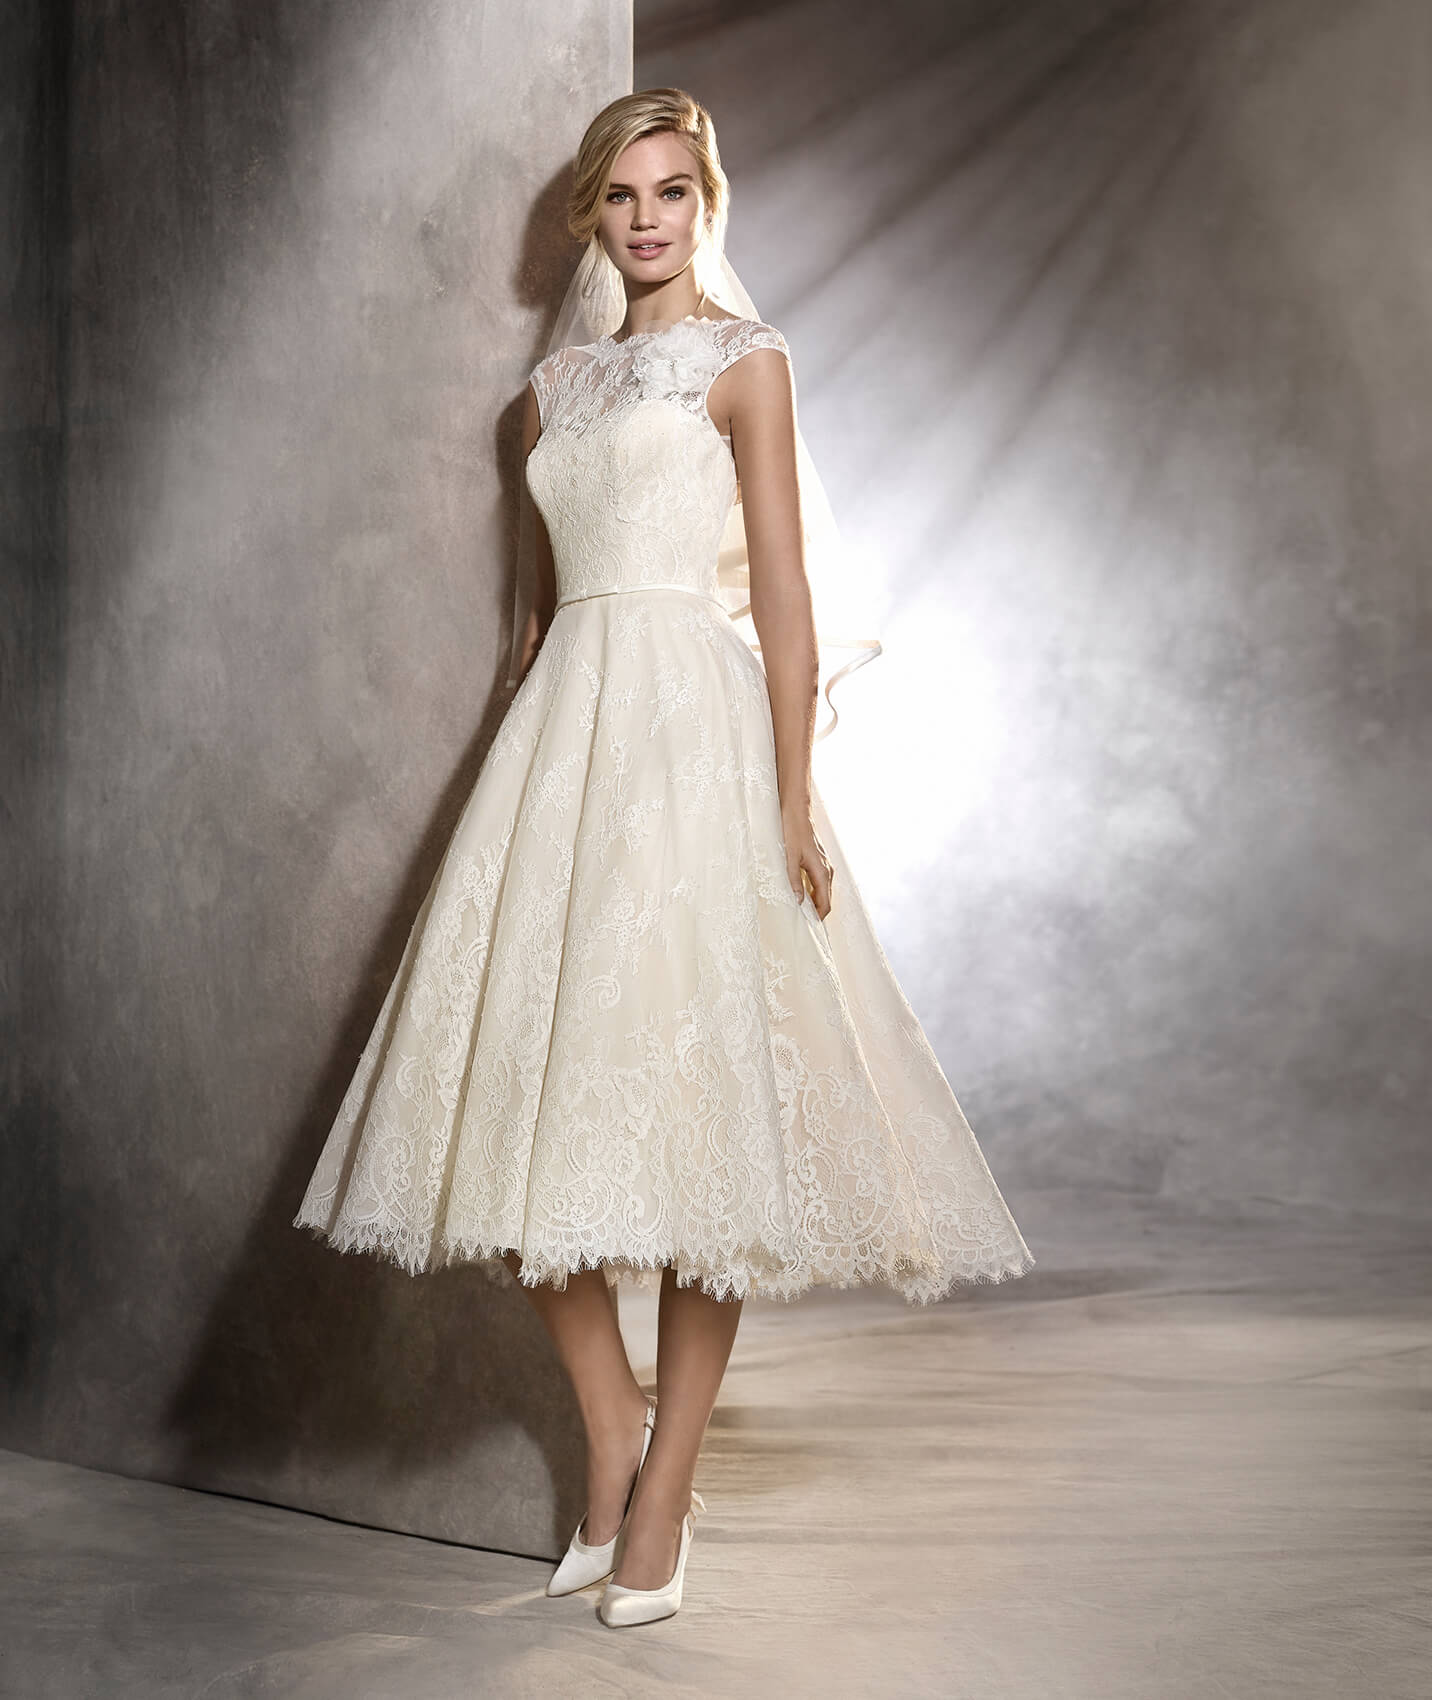 Olga wedding dress